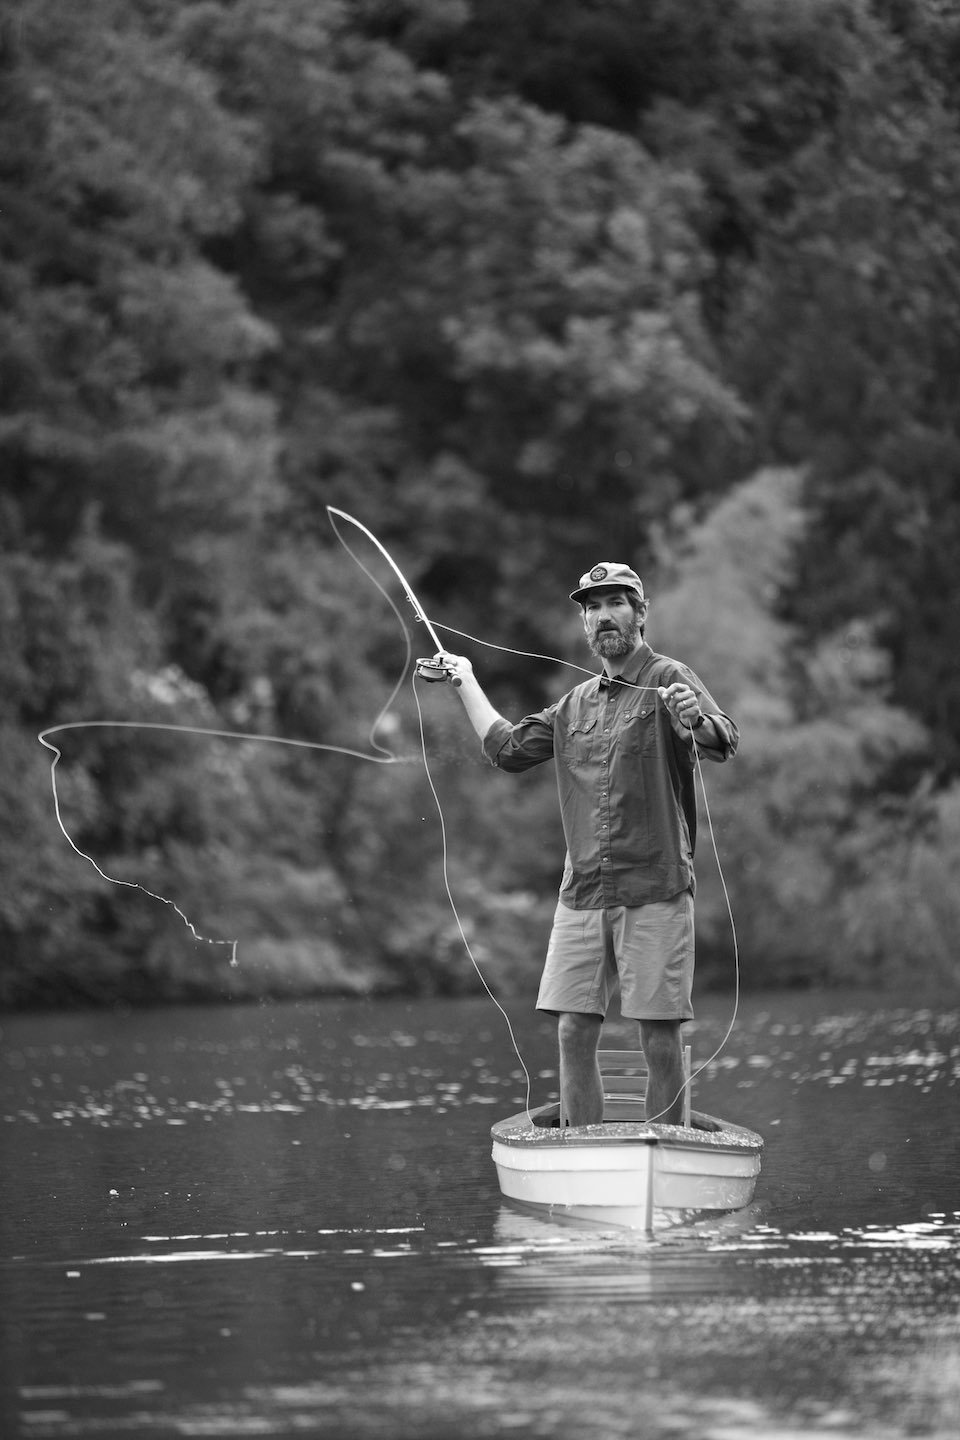 Fisherman standing in a small boat while casting a line, shot in B&W.